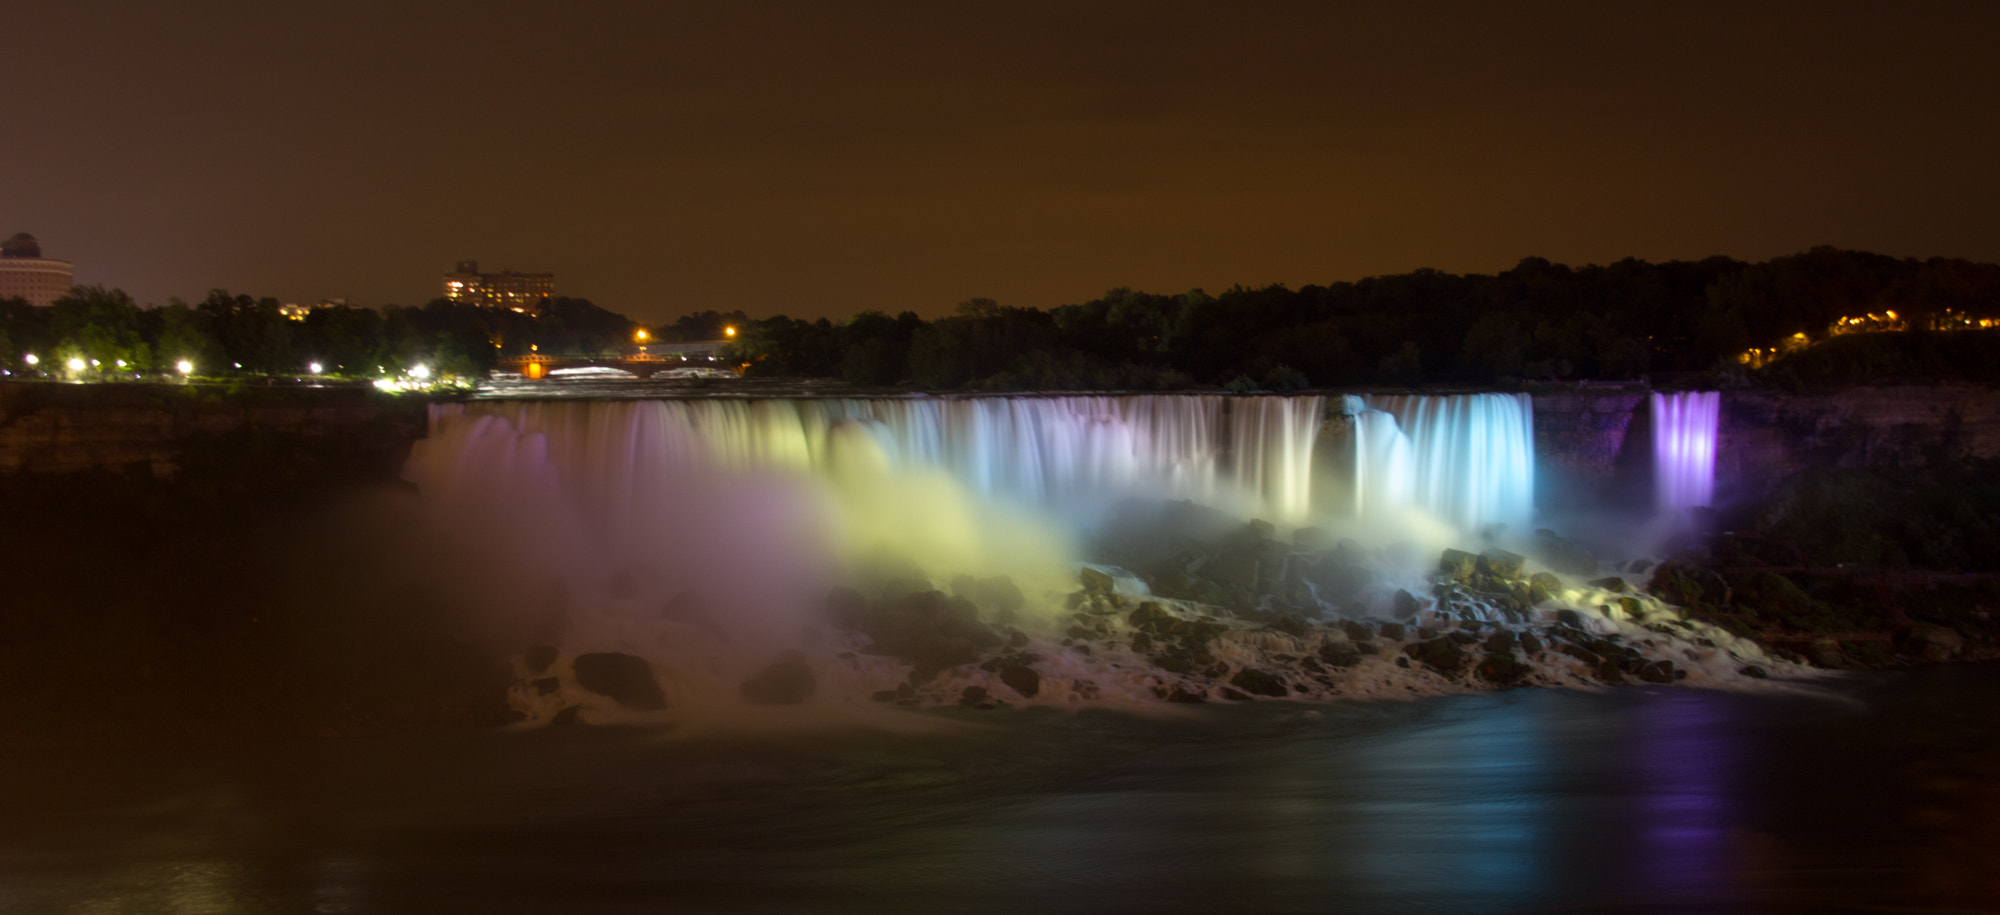 Photograph Niagara Falls at Night by Hans Fischer on 500px